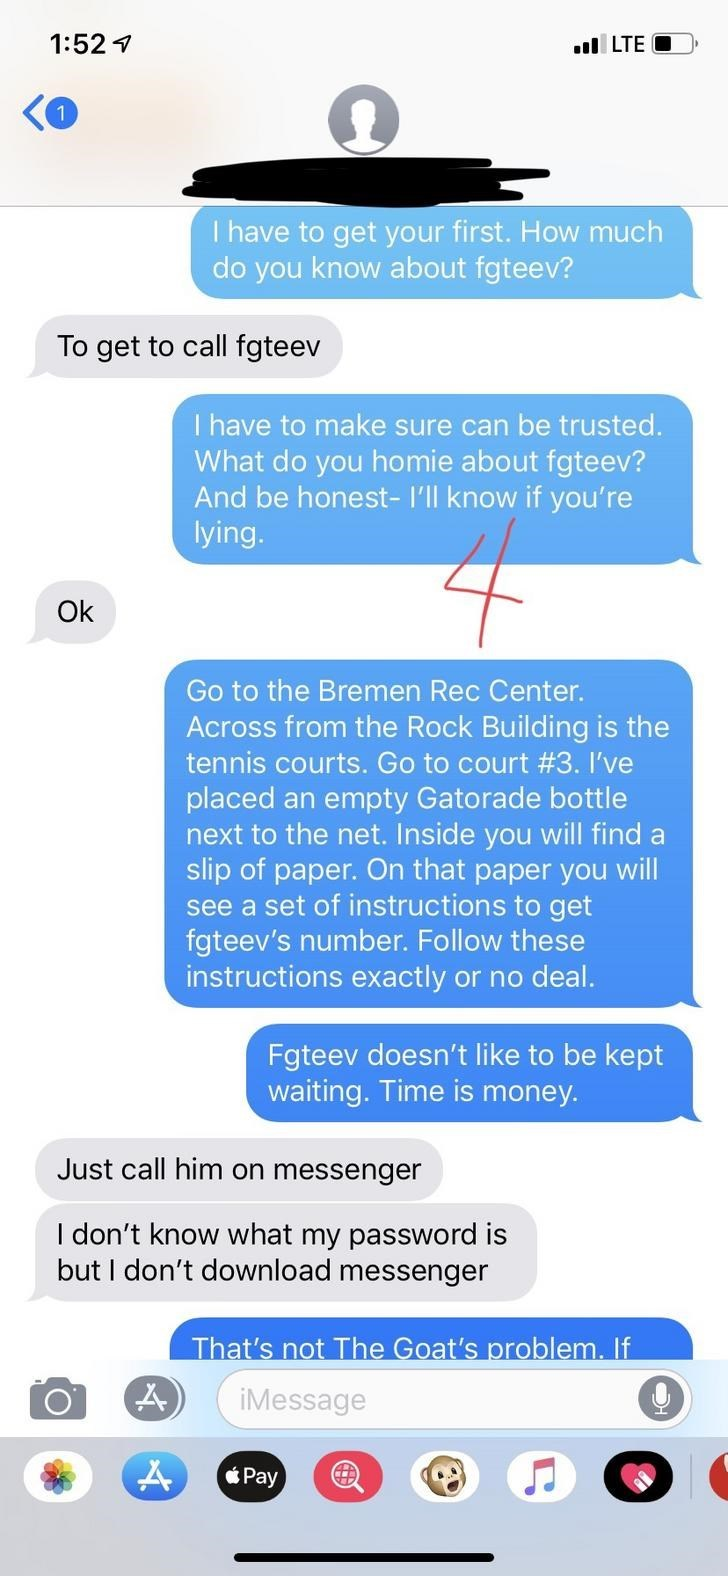 Text - 1:52 1 l LTE O I have to get your first. How much do you know about fgteev? To get to call fgteev I have to make sure can be trusted. What do you homie about fgteev? And be honest- l'll know if you're lying. Ok Go to the Bremen Rec Center. Across from the Rock Building is the tennis courts. Go to court #3. I've placed an empty Gatorade bottle next to the net. Inside you will find a slip of paper. On that paper you will see a set of instructions to get fgteev's number. Follow these instruc